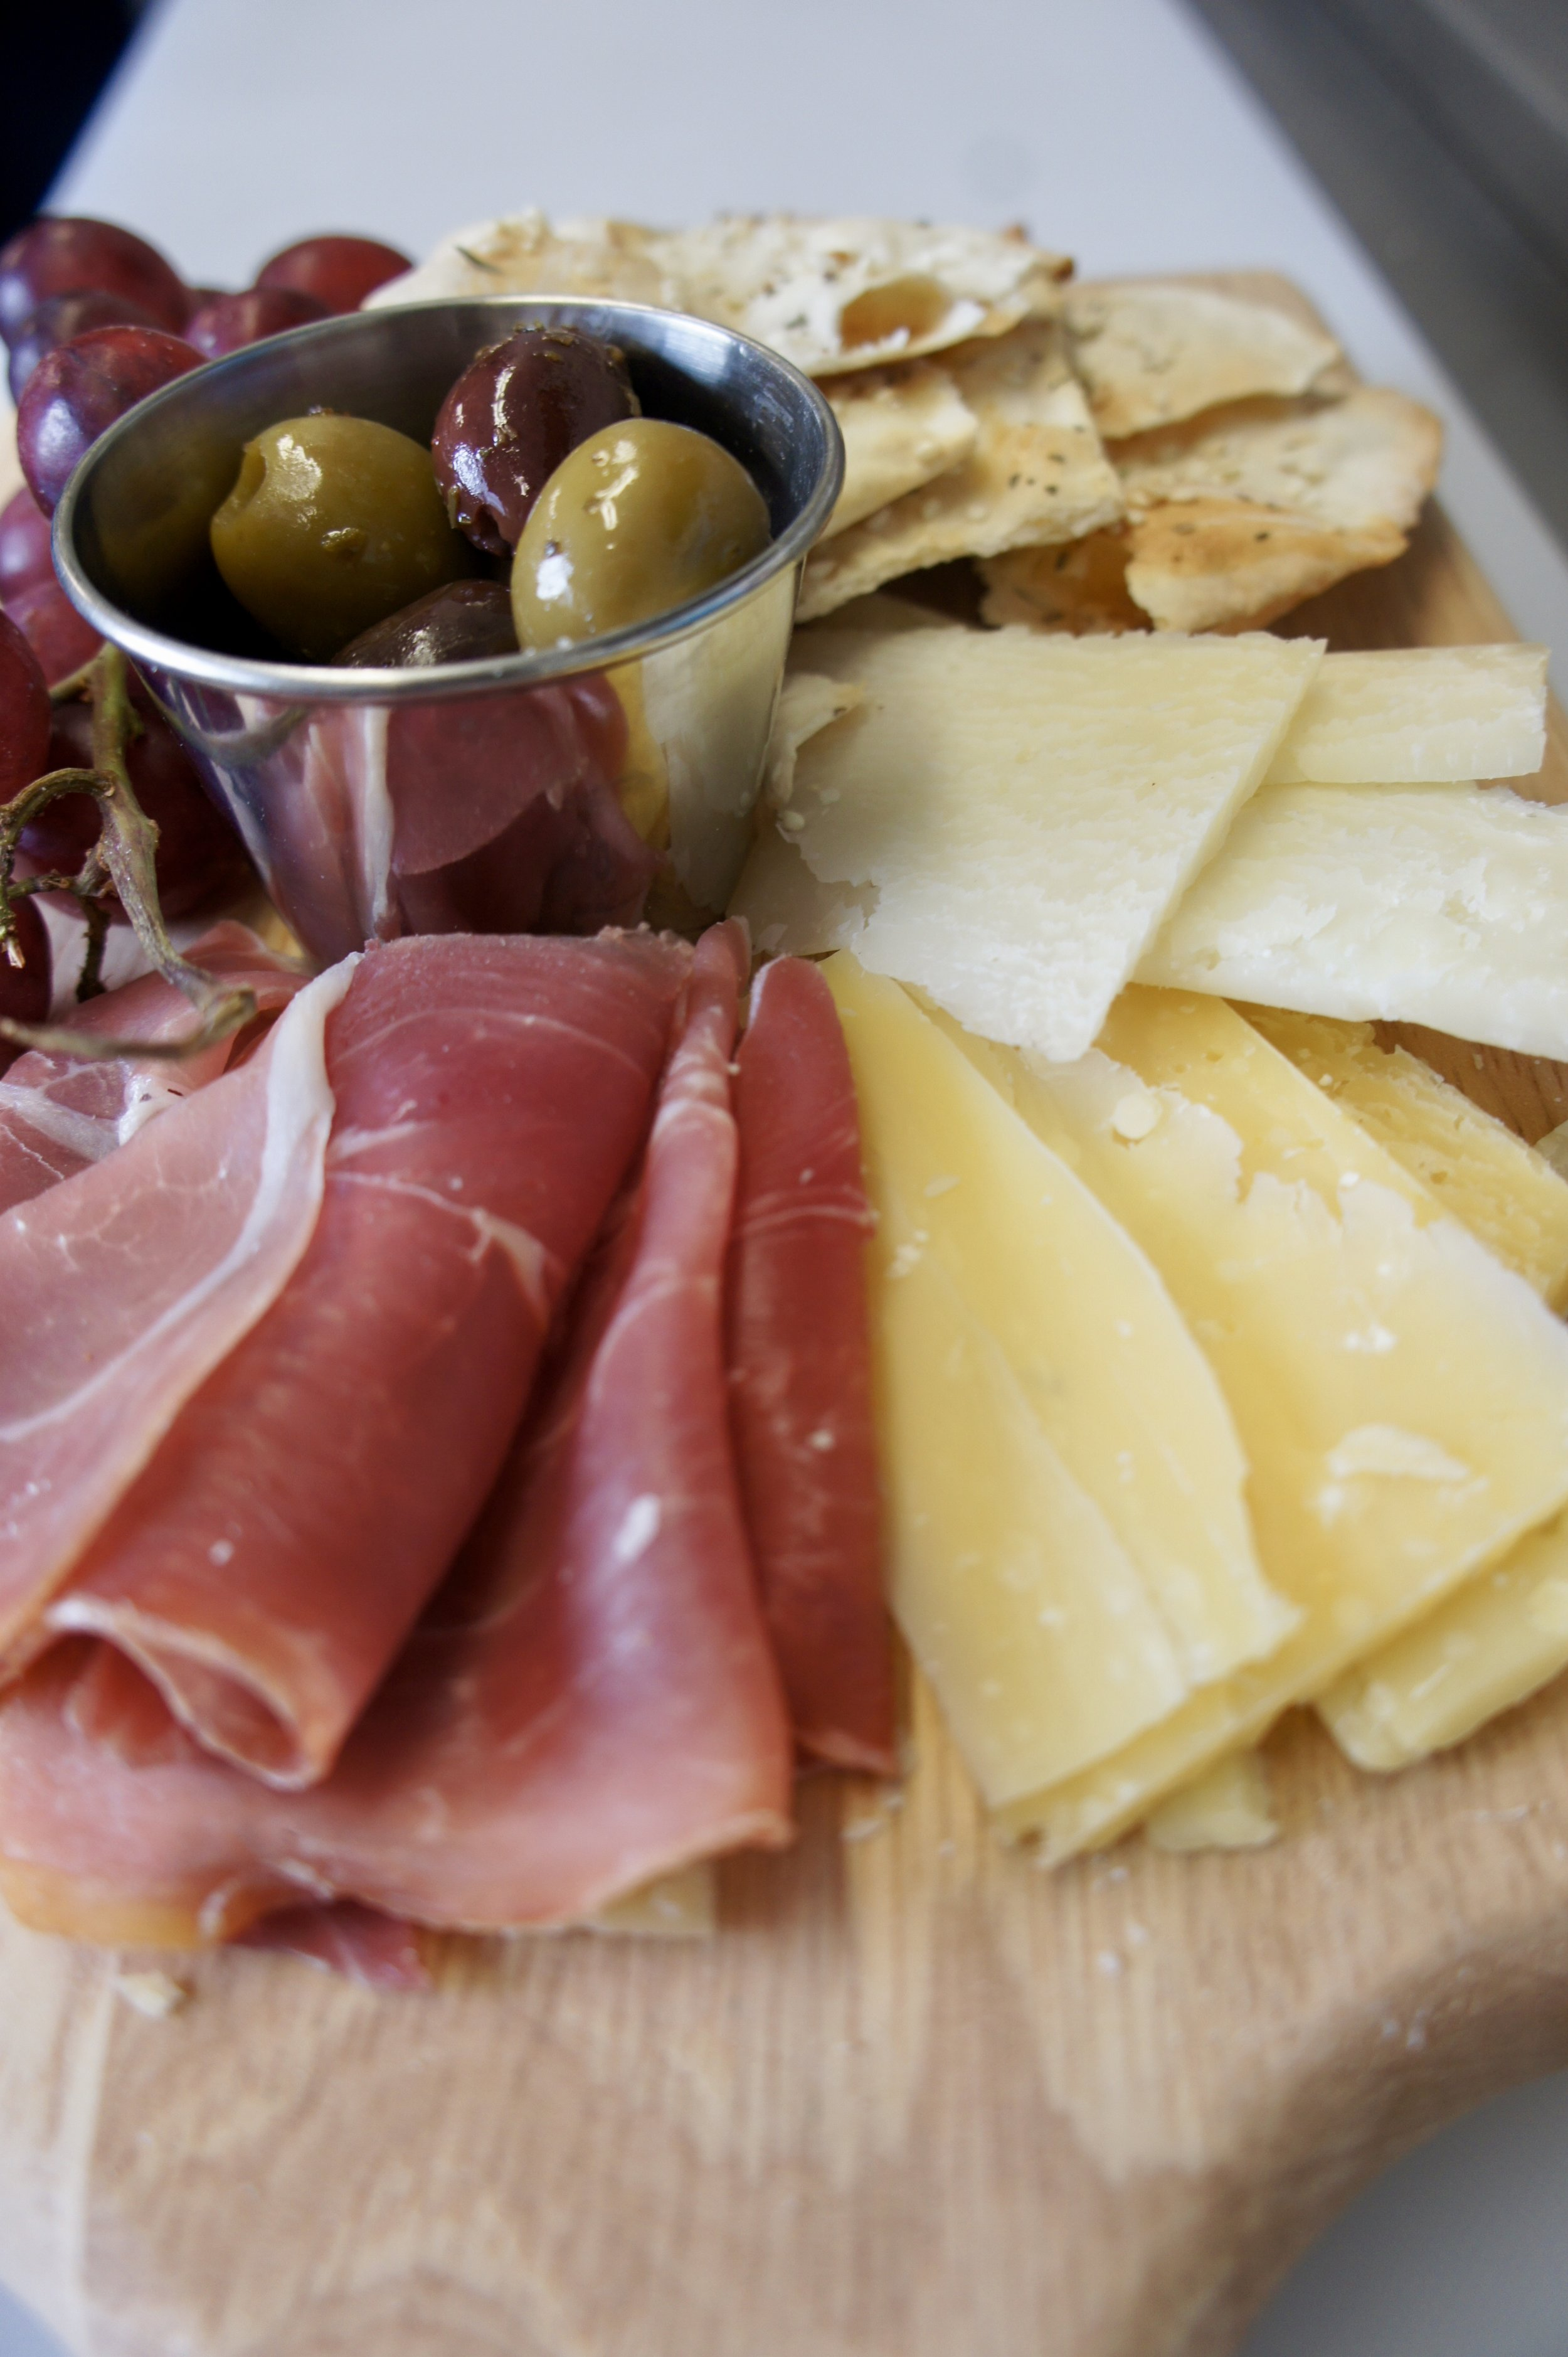 Cheese Tray featuring W&W Cheese and accompaniments